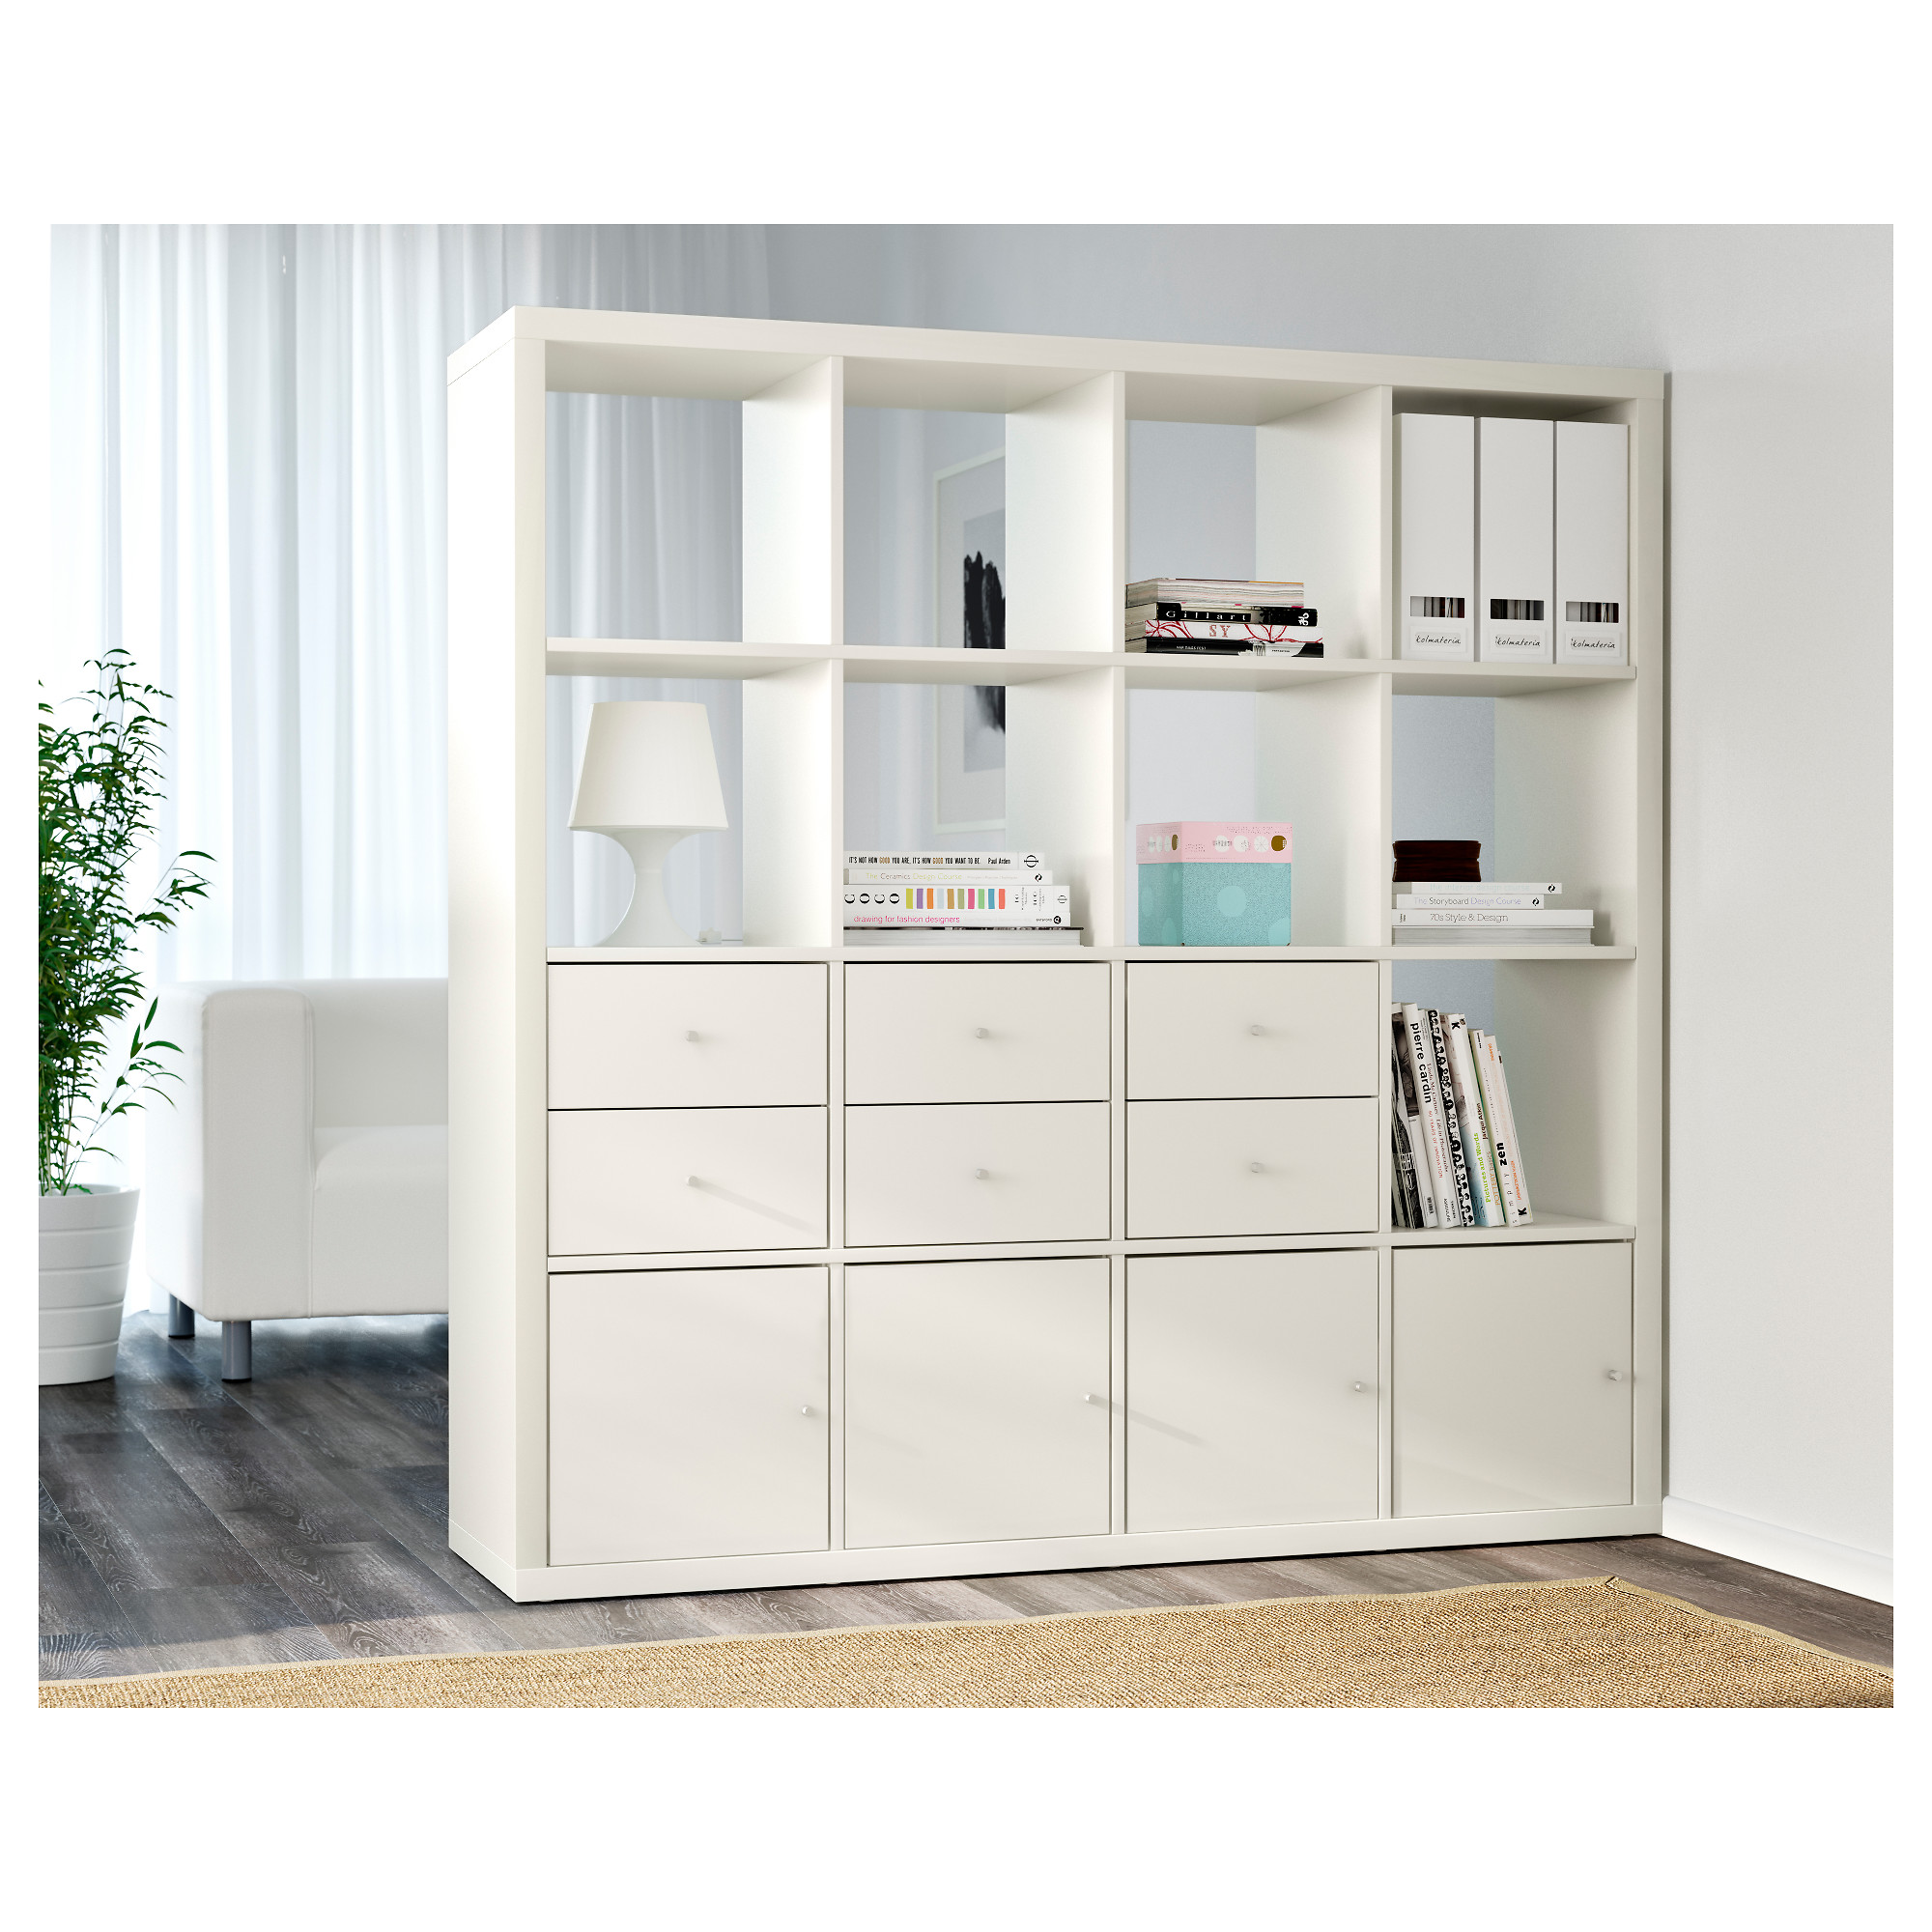 astonishing photos stupendous box home com bookshelf with kitchen federal full white furniture of chest toy dining for ideas target cosco size amazon bookcase cassidy